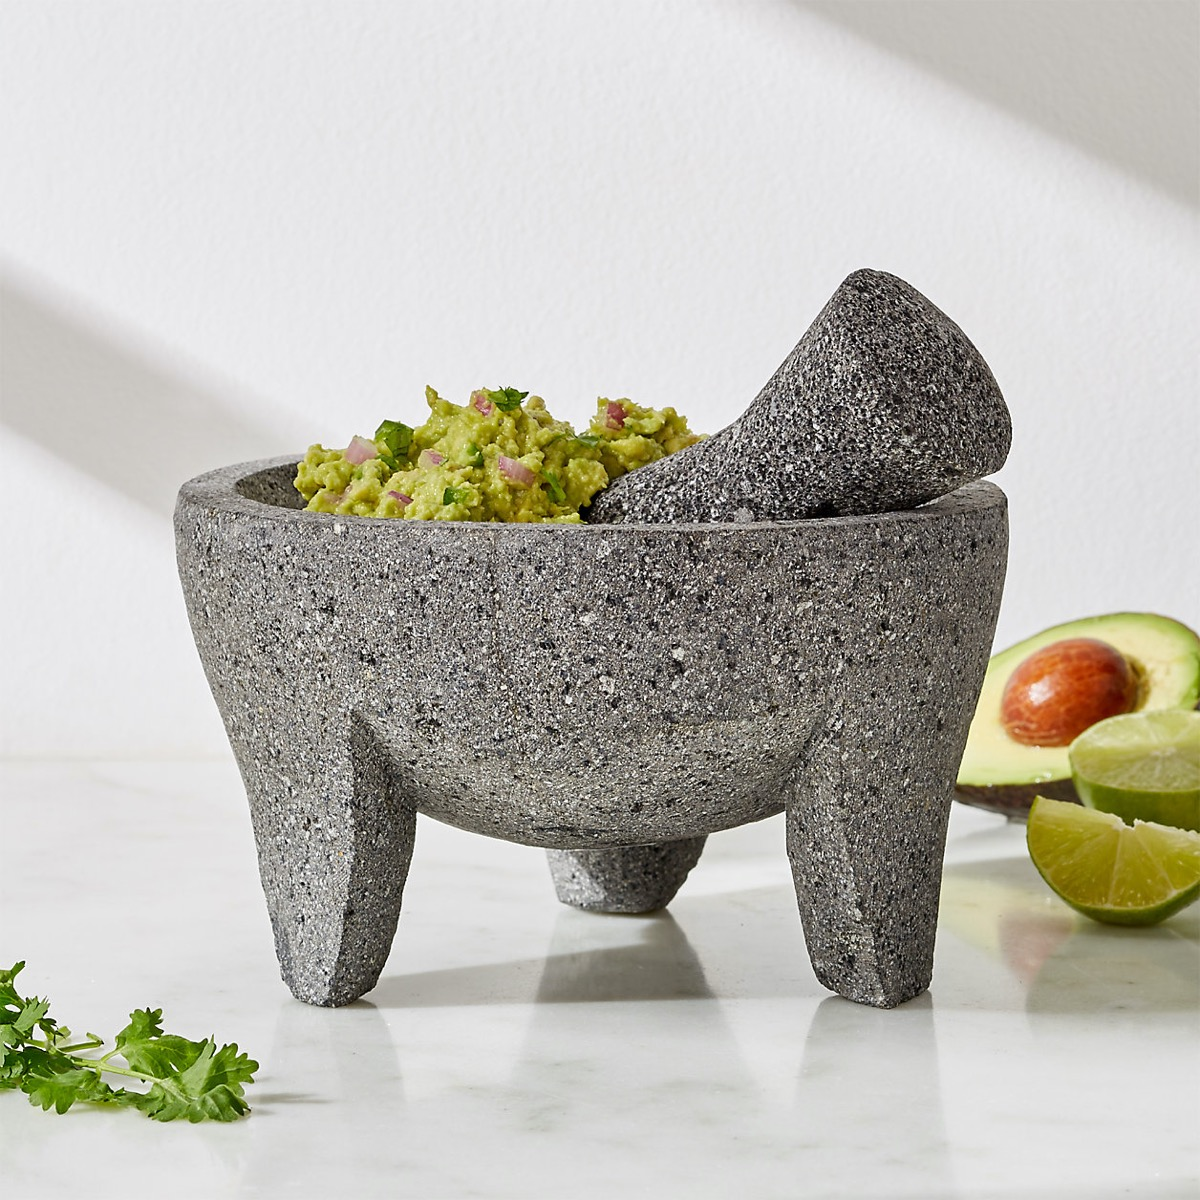 mortar and pestle with guacamole in it